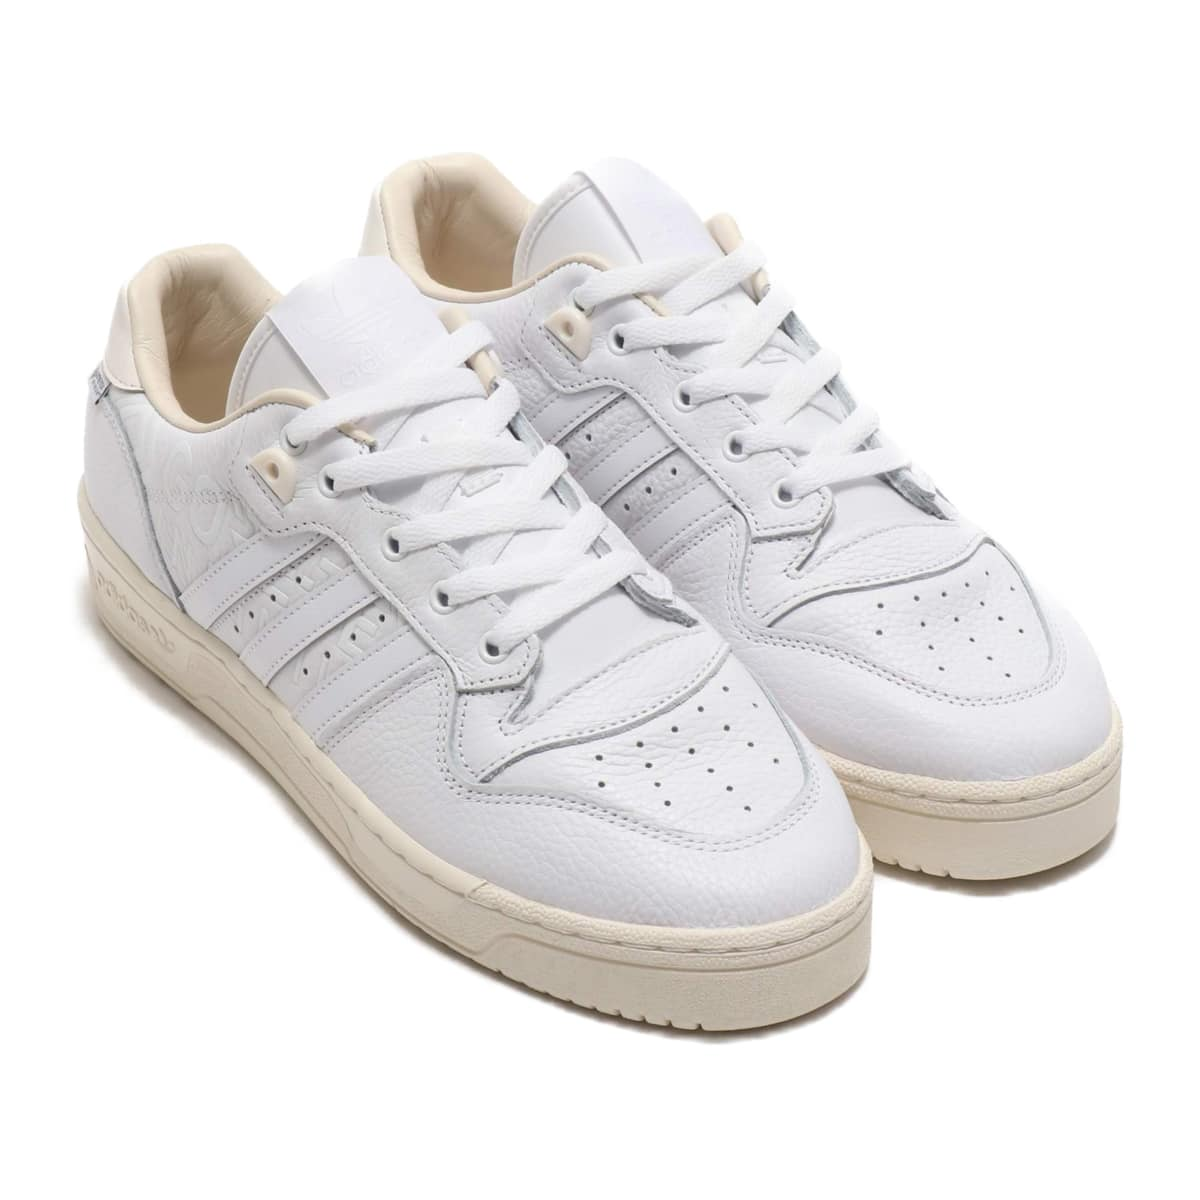 adidas RIVALRY LOW GORE-TEX RUNNING WHITE/OFF WHITE/CHORK WHITE 19FW-S_photo_large